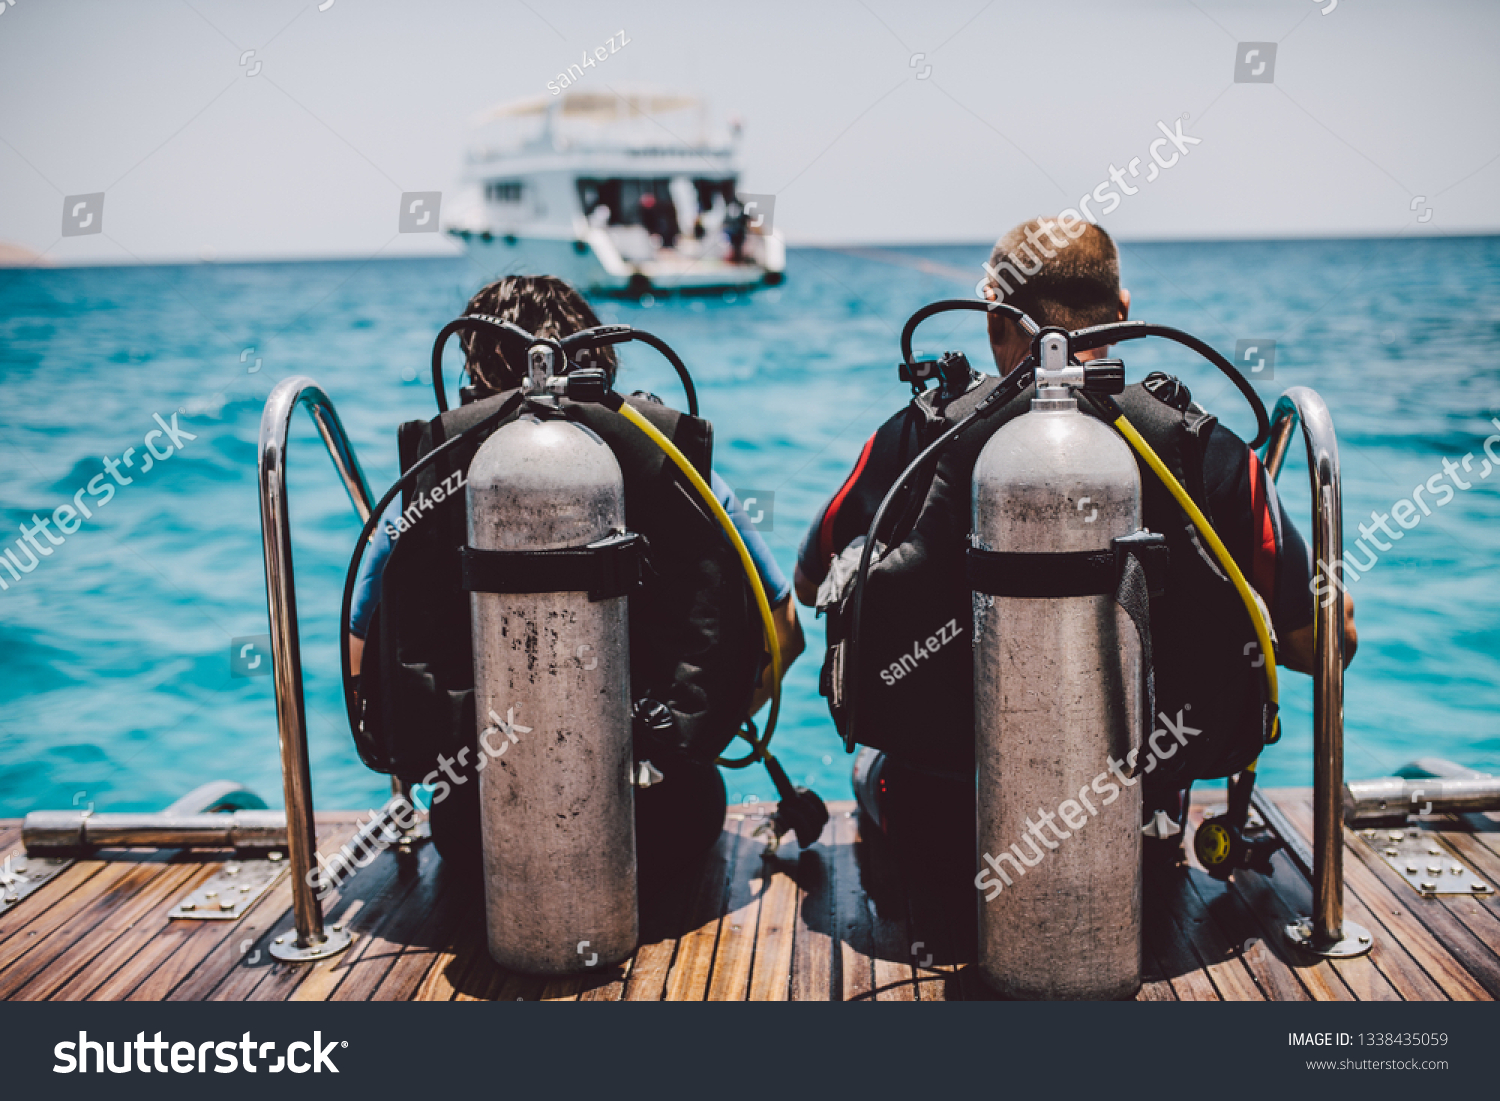 Diving lesson in open water. Scuba diver before diving into ocean. #1338435059